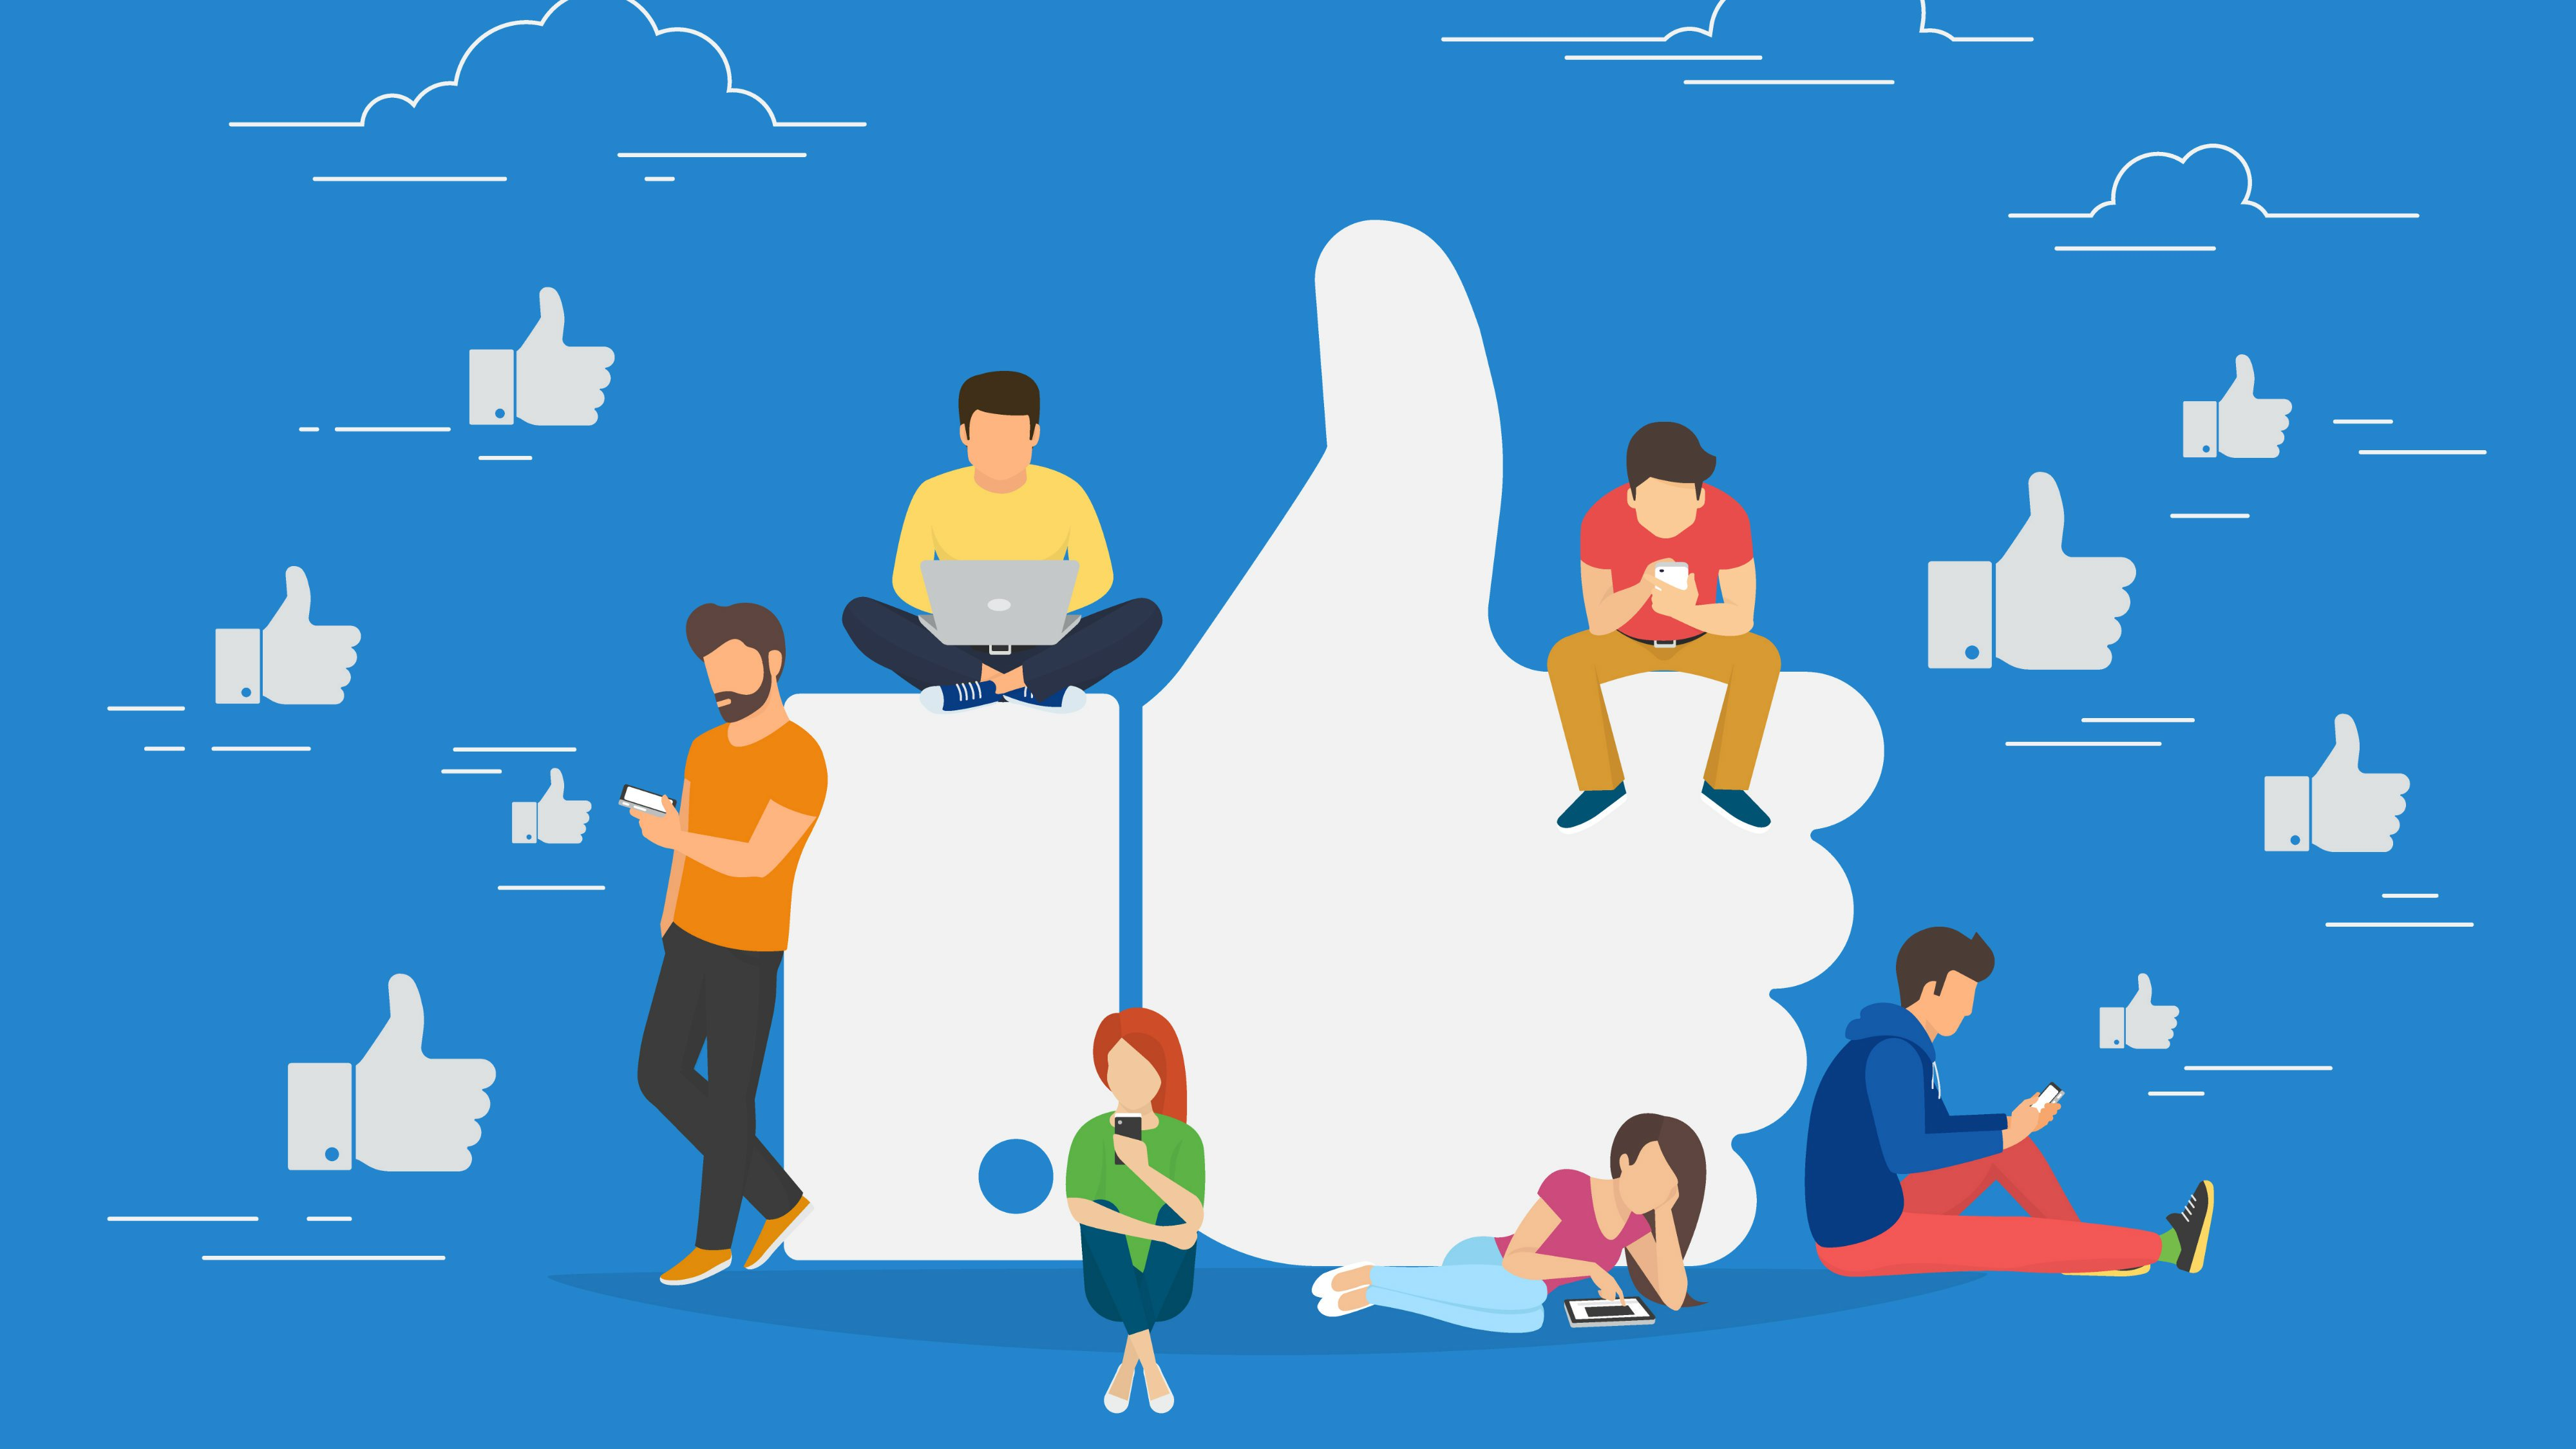 Illustration, guide facebook de la page d'entreprise